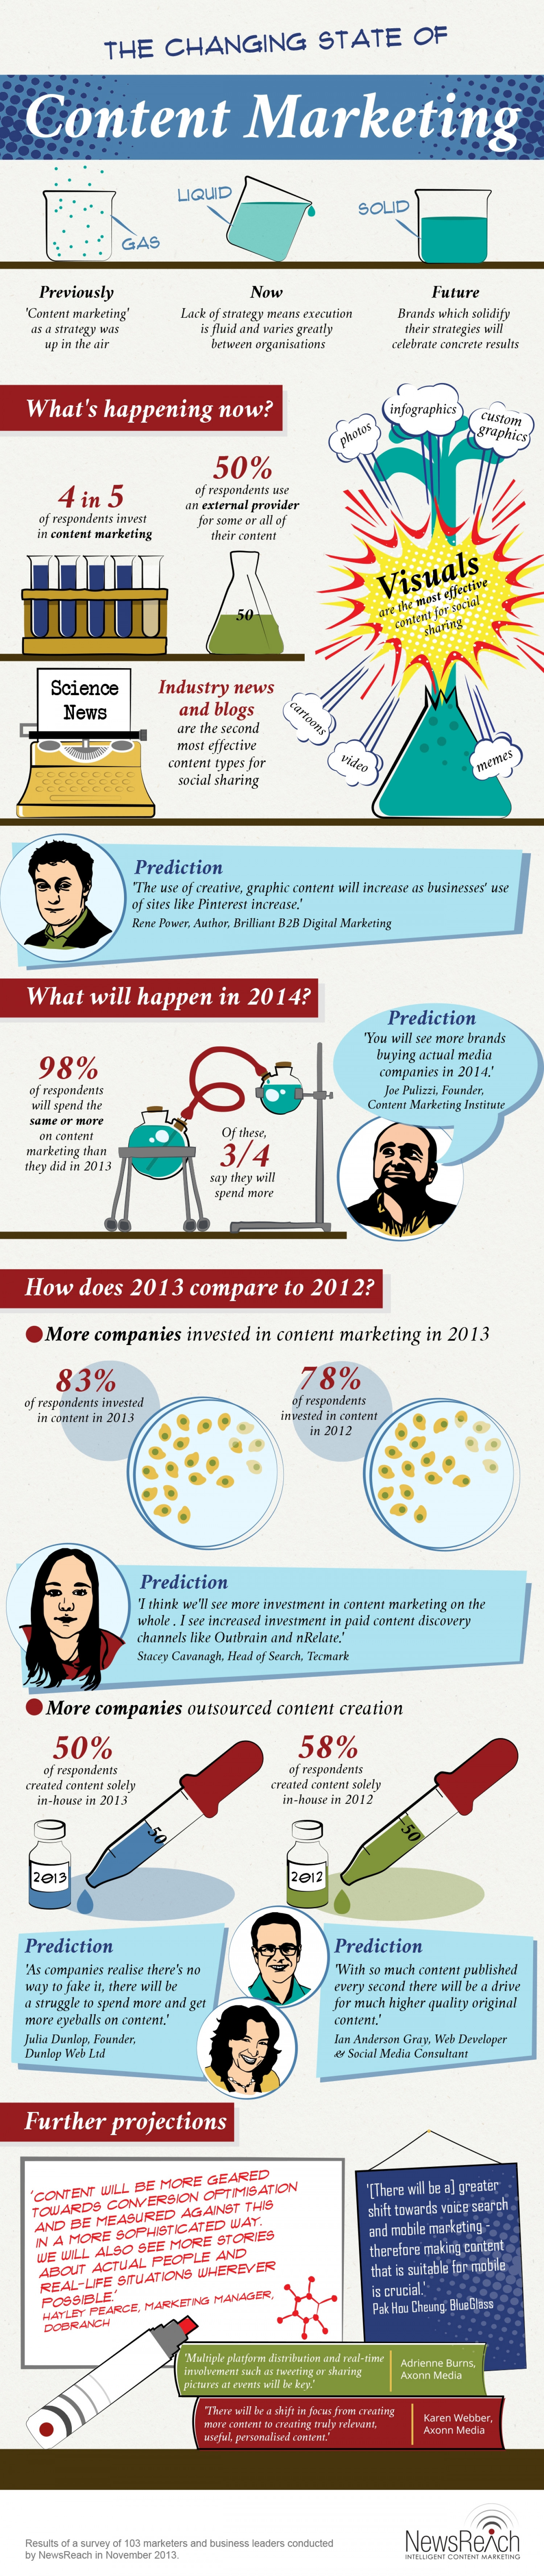 2014 The Changing State of Content Marketing Infographic